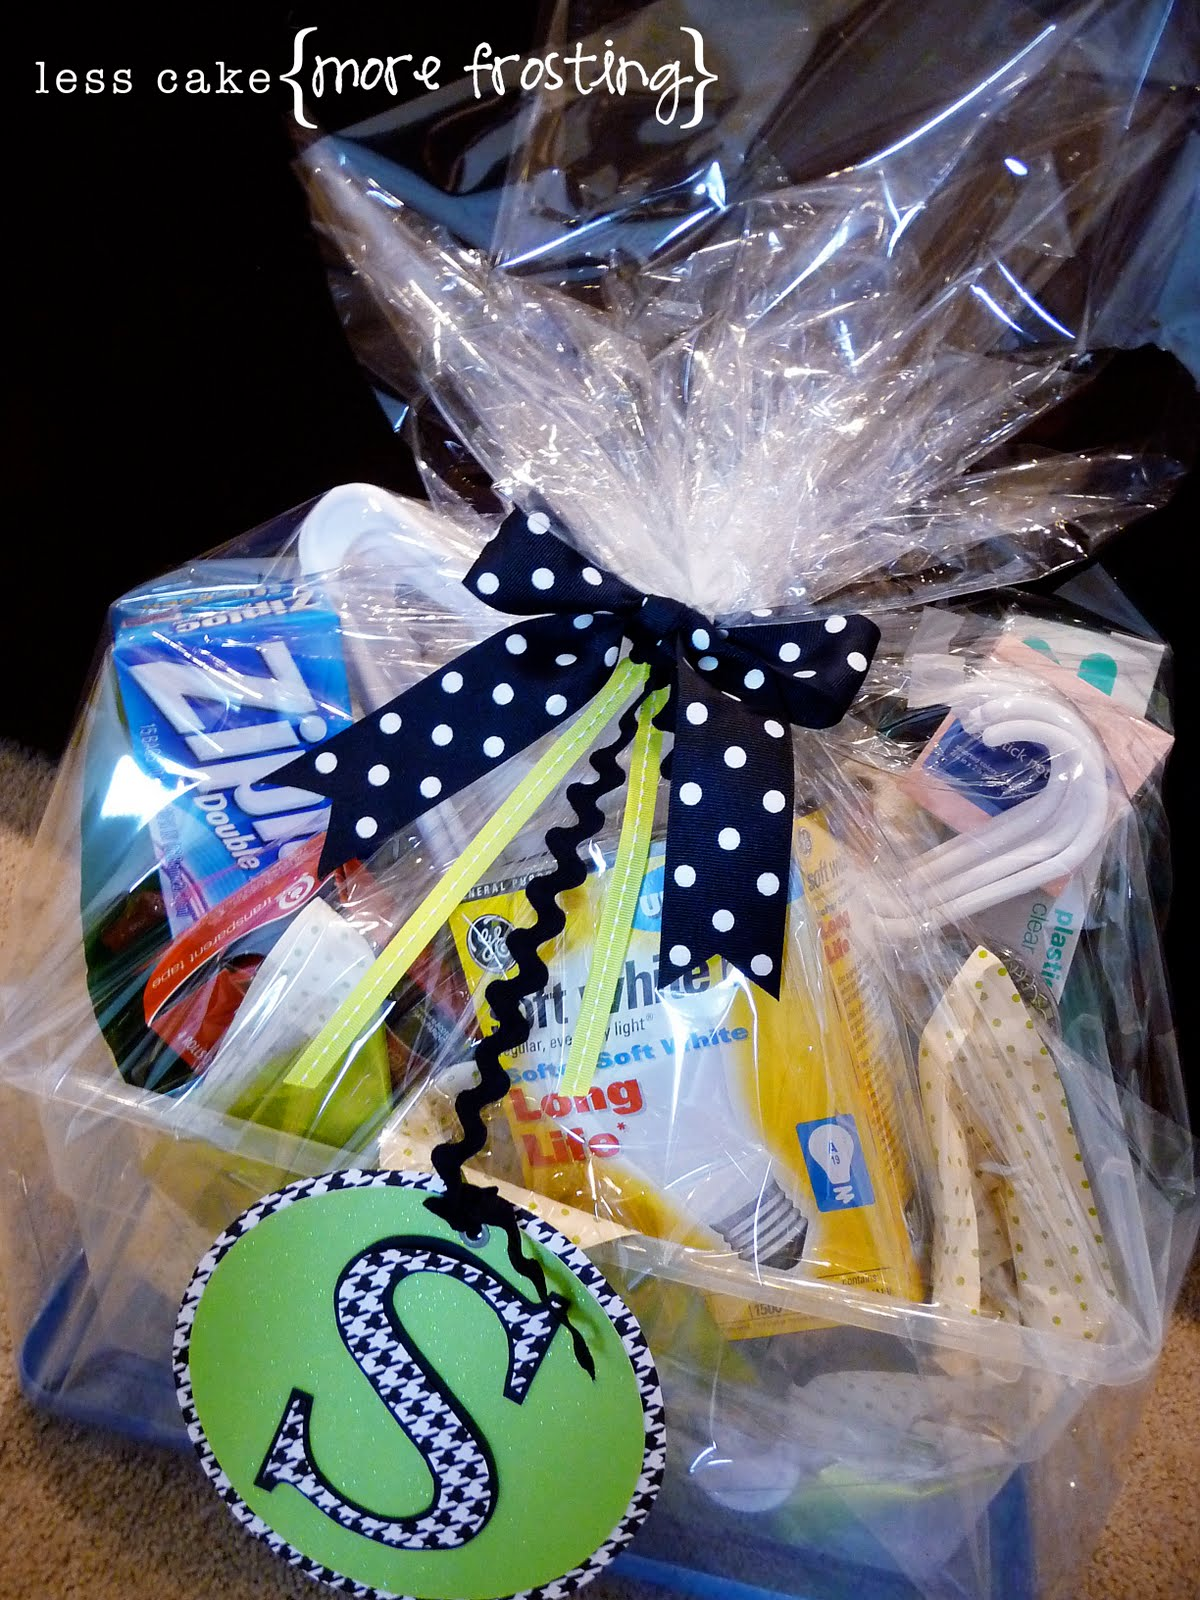 Cute Wedding Gift Basket Ideas : My Blog Just another WordPress.com site Page 159